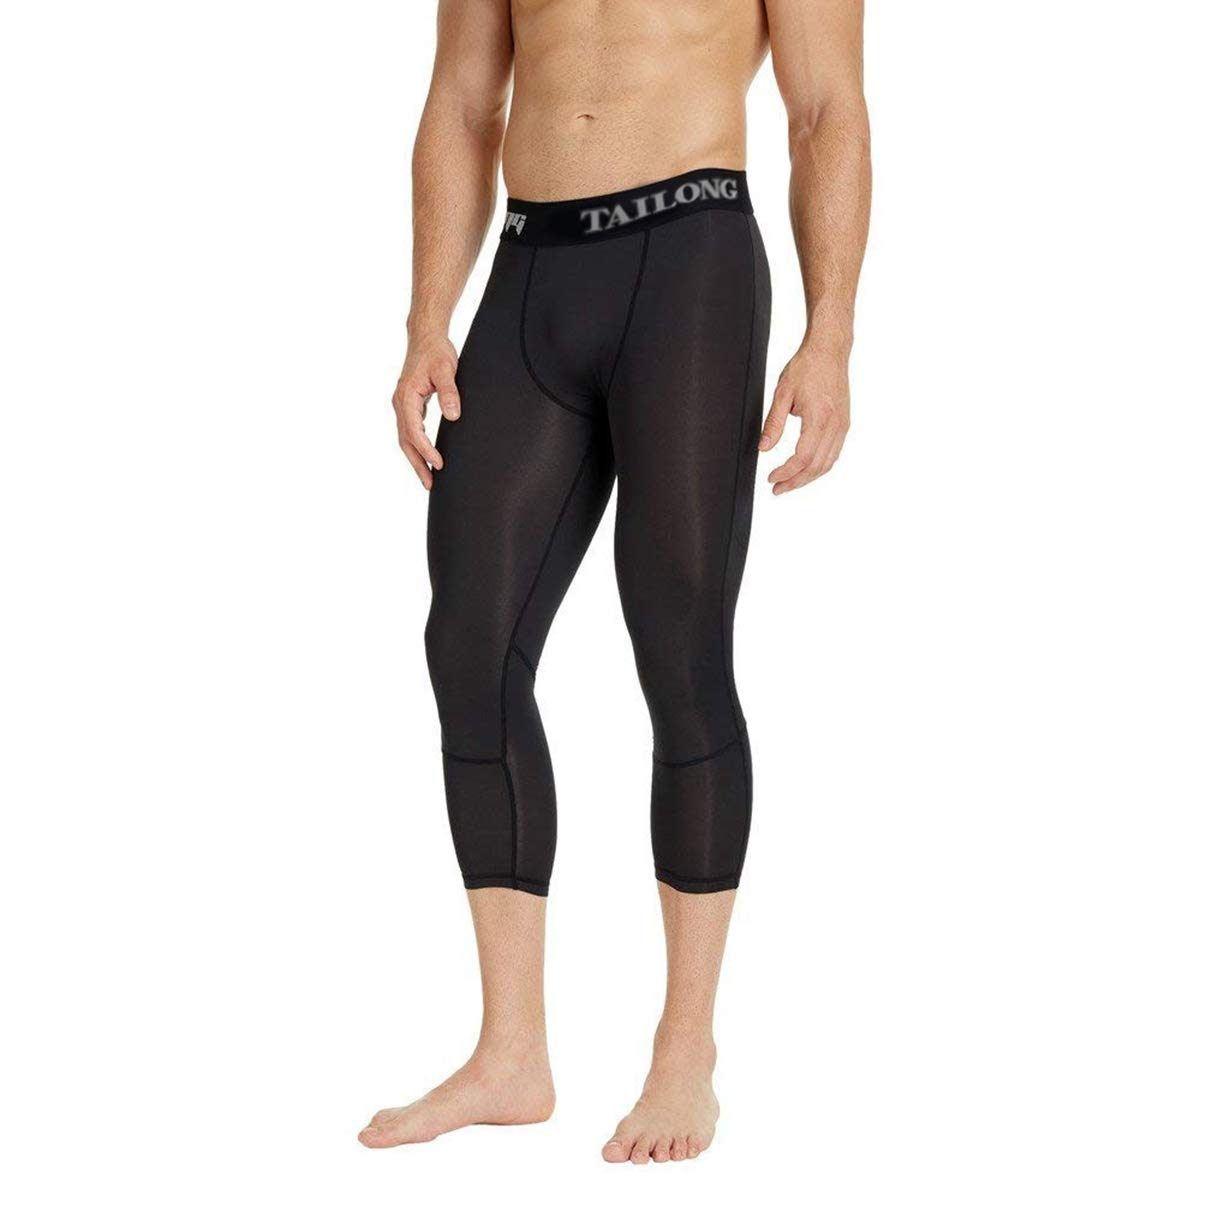 f62e581fd0d22 Men sports running pants constructed by nylon and polyester, 4-way stretch  fabric retain full mobility. Flatlock seams to reduce chafe for greater  comfort, ...